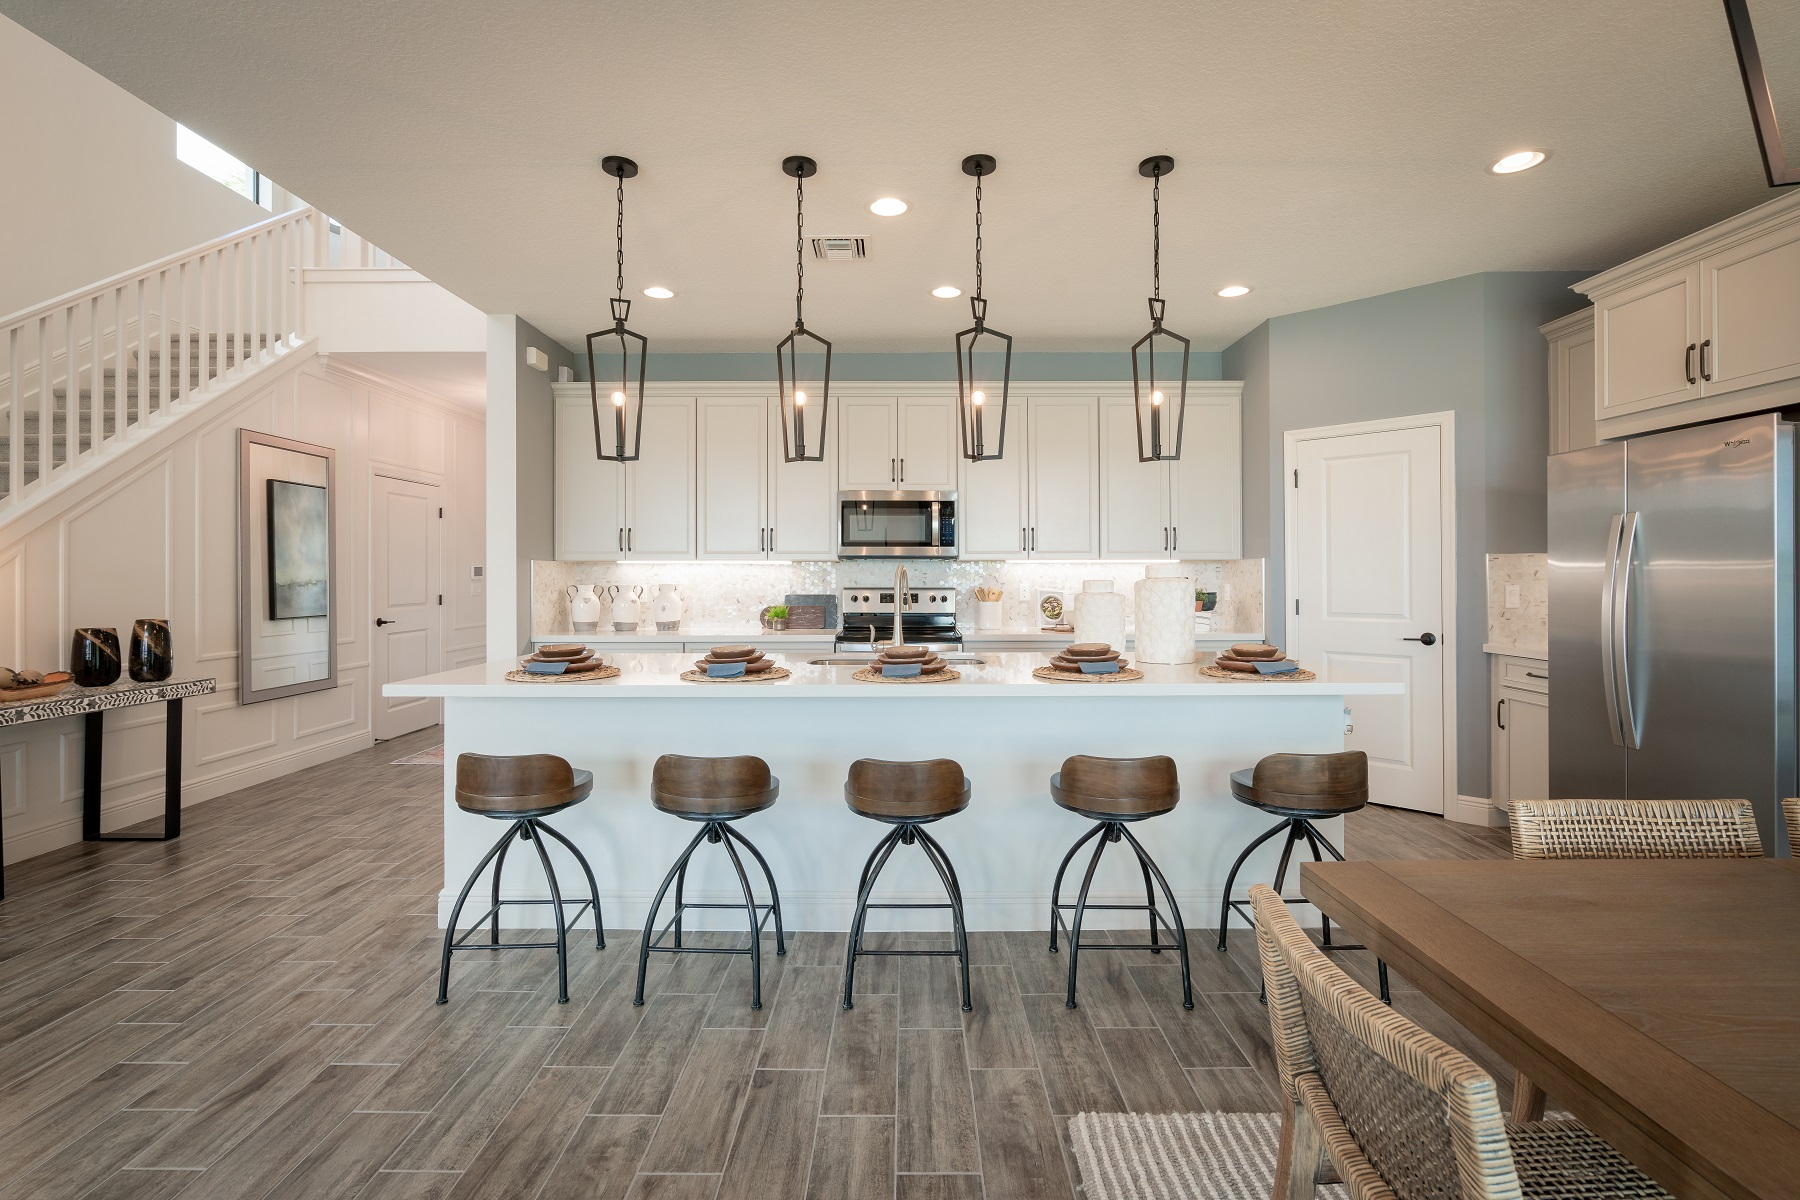 SEF_Saddlewood_Oakley_Gallery_Contemporary_Kitchen1_masthead in Port St. Lucie Florida by Mattamy Homes